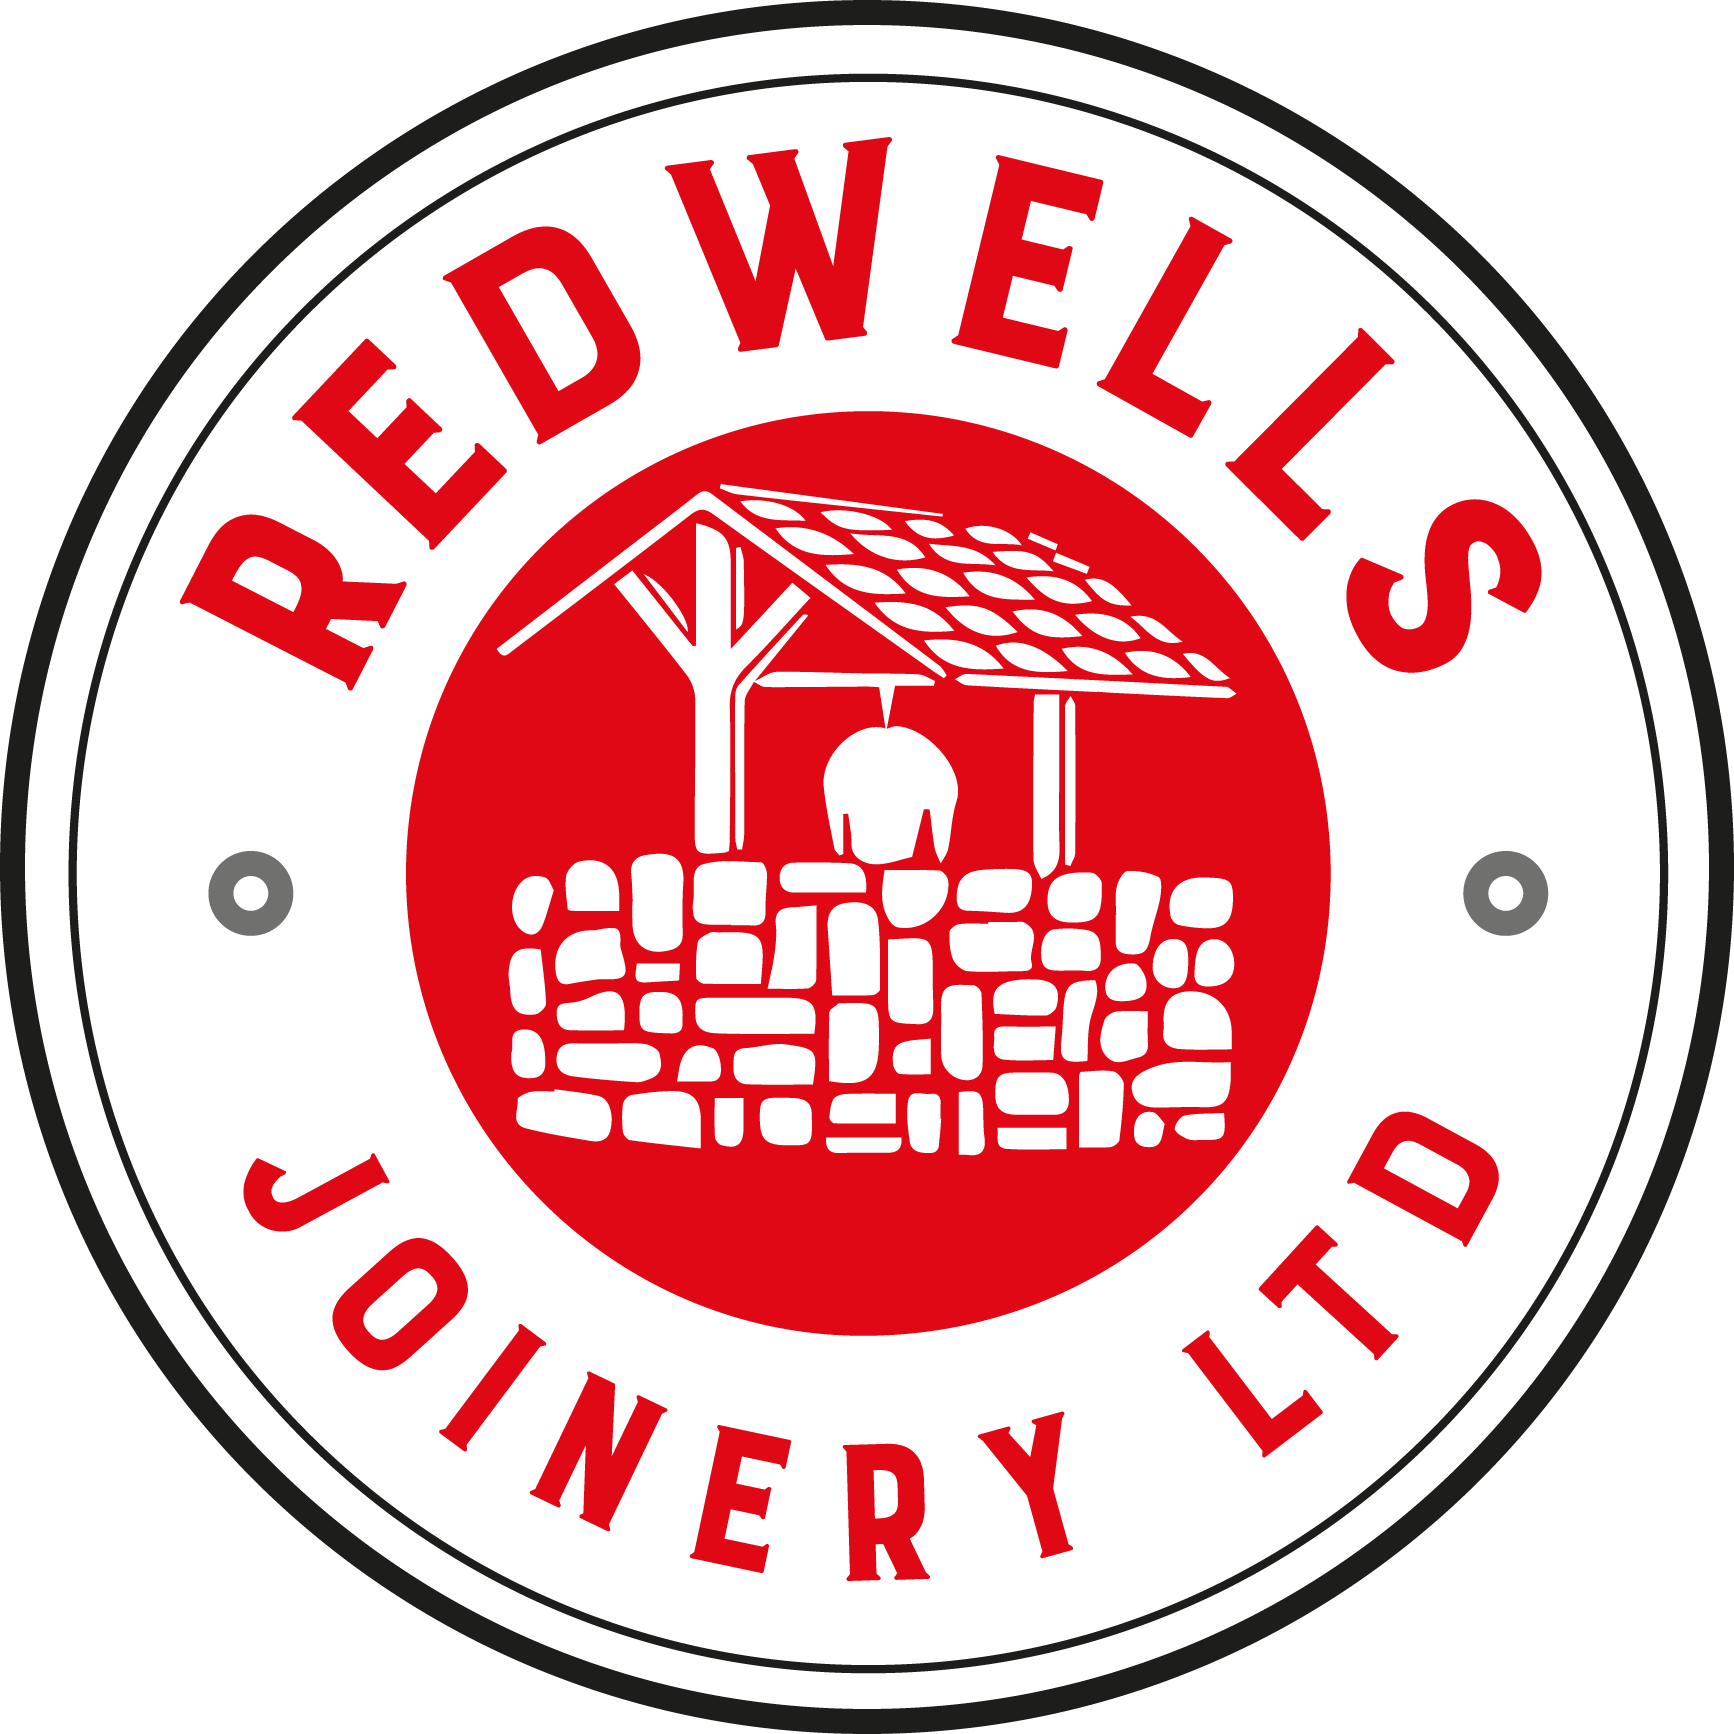 Redwells Joinery